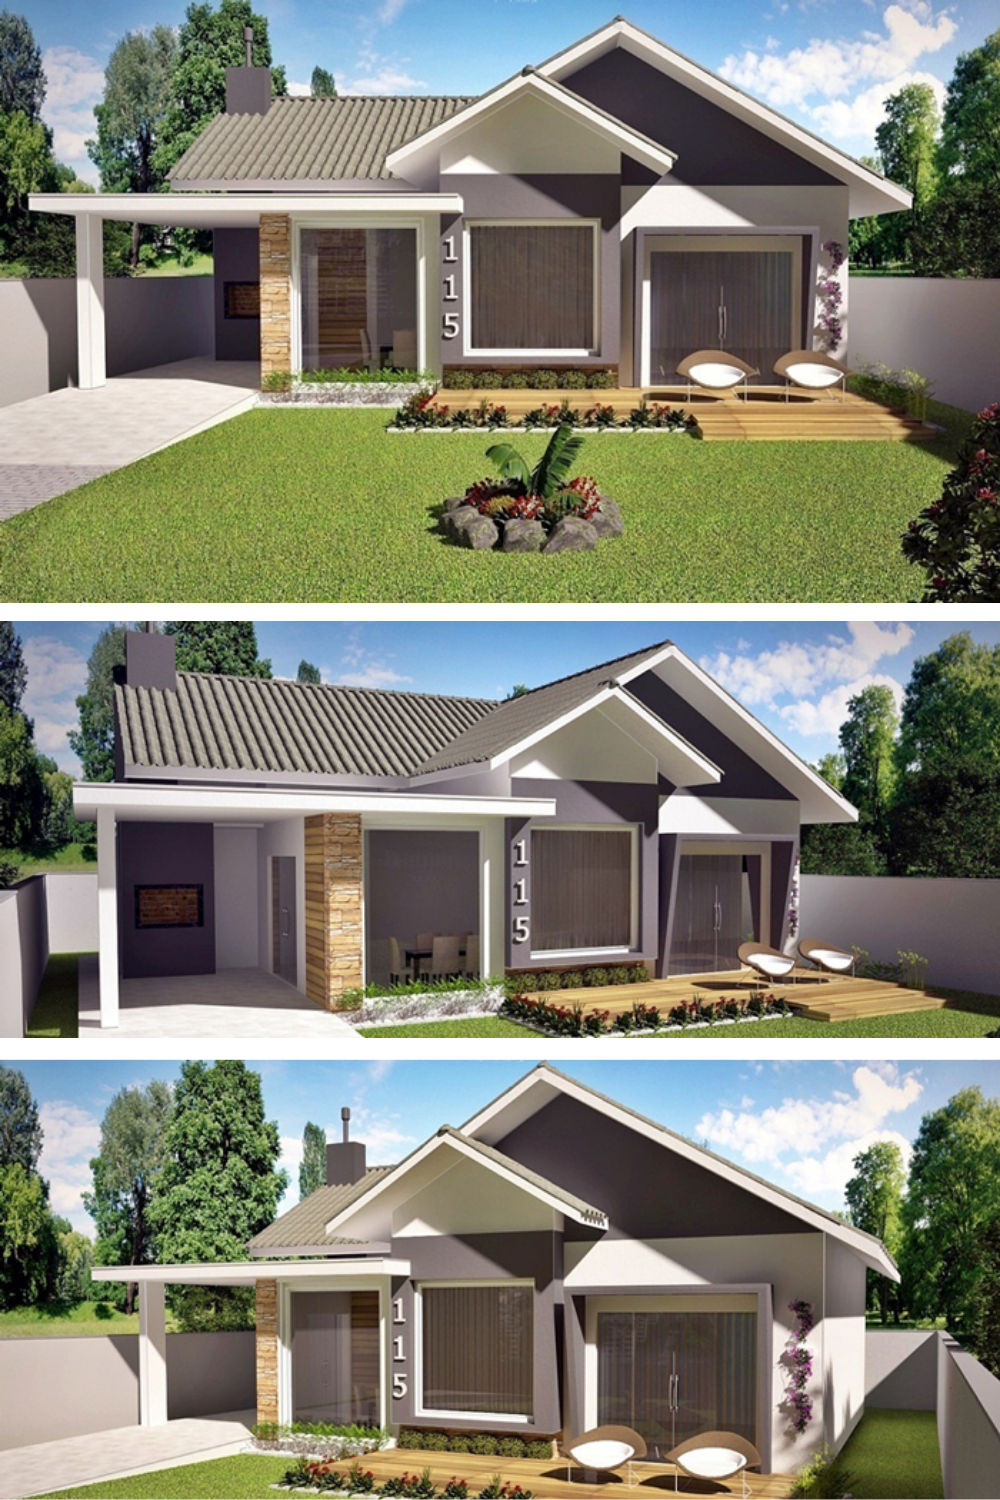 American Style 3 Bedroom House Plan Bungalow House Design Facade House House Design